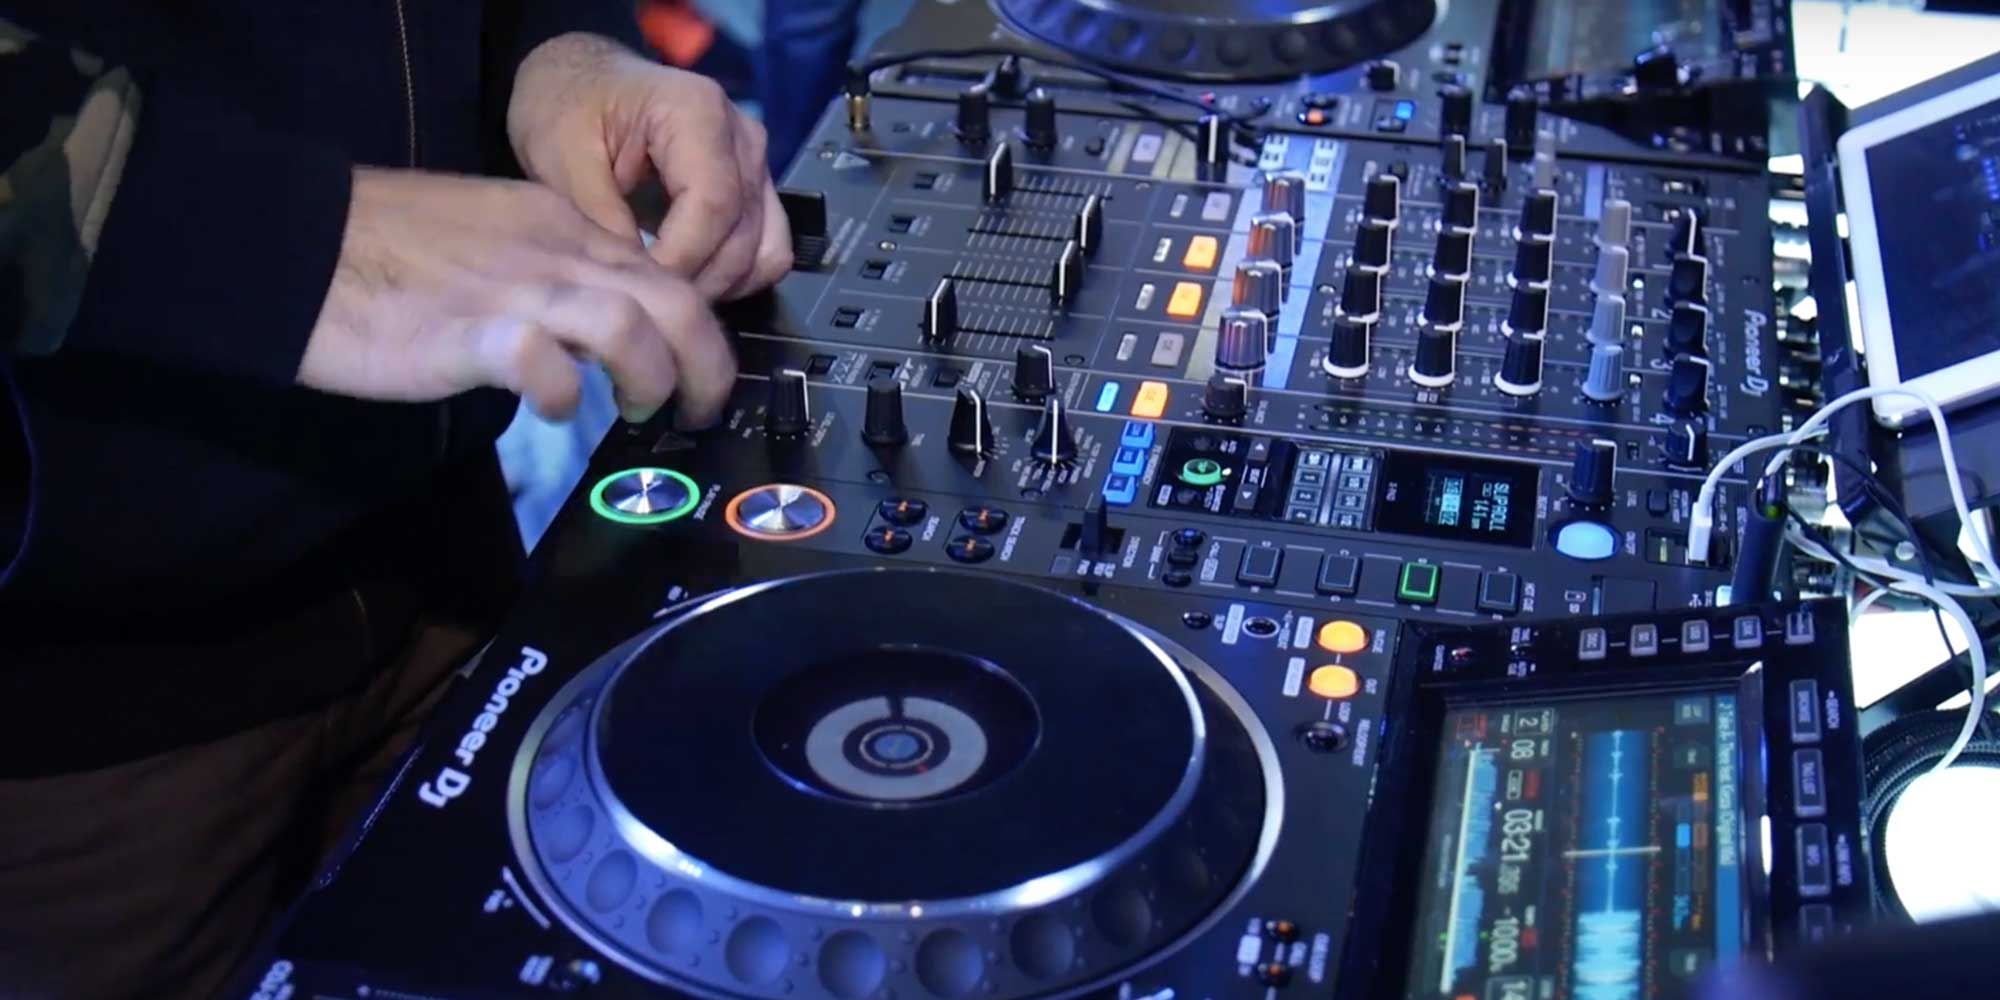 Pioneer introduces the DJM900NX2 and DJM900NXS2